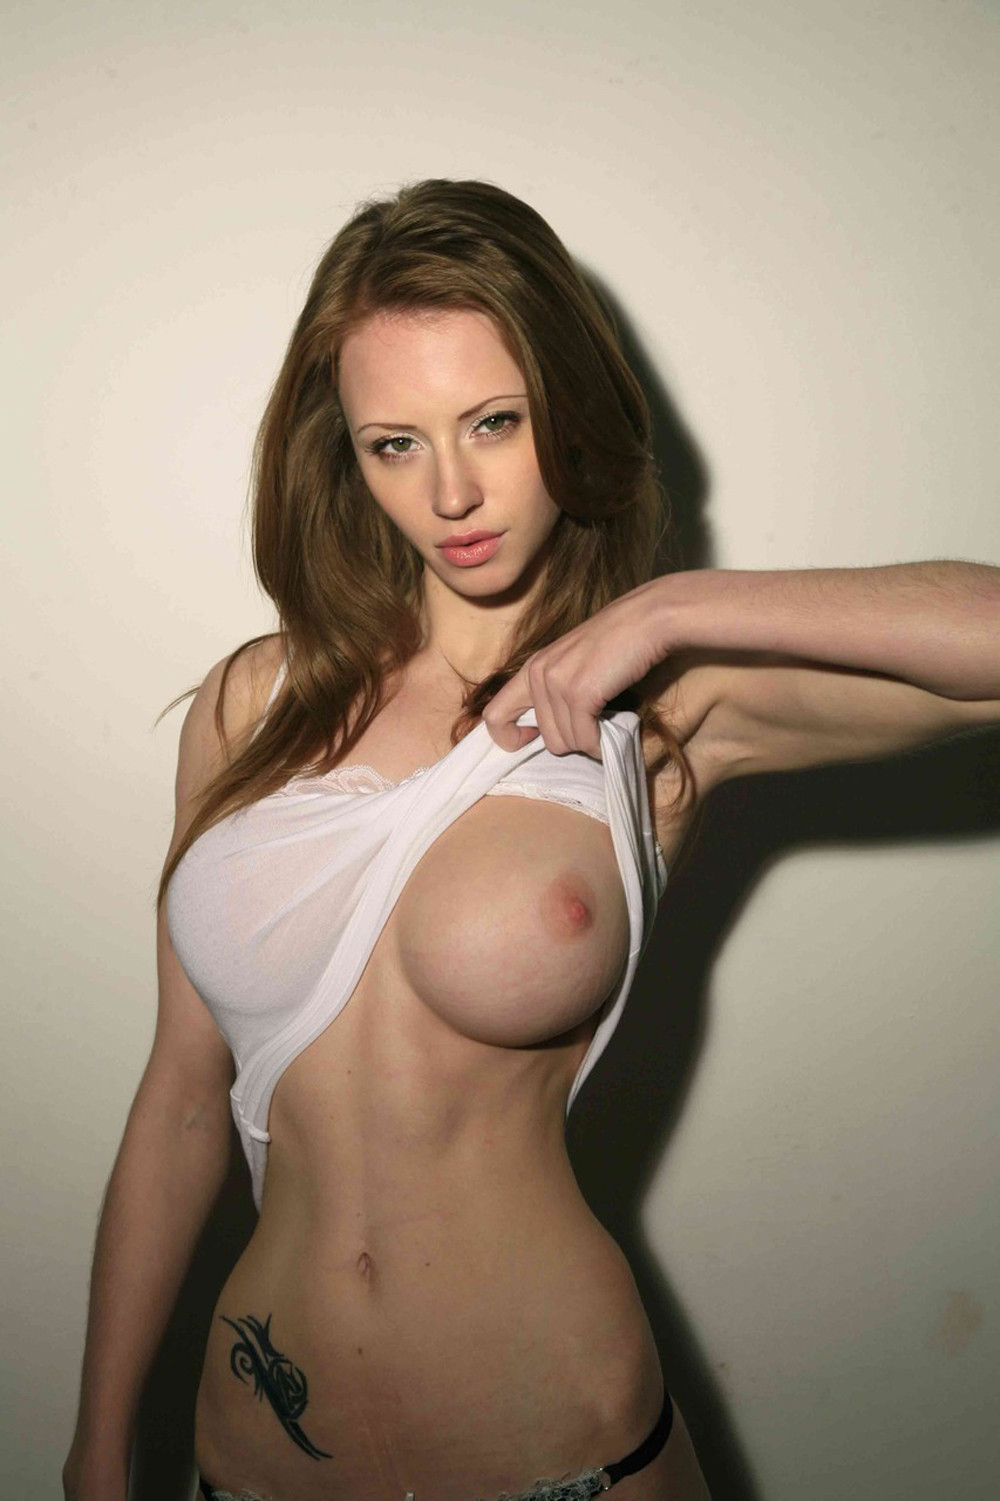 hot chick ugly pussy pics